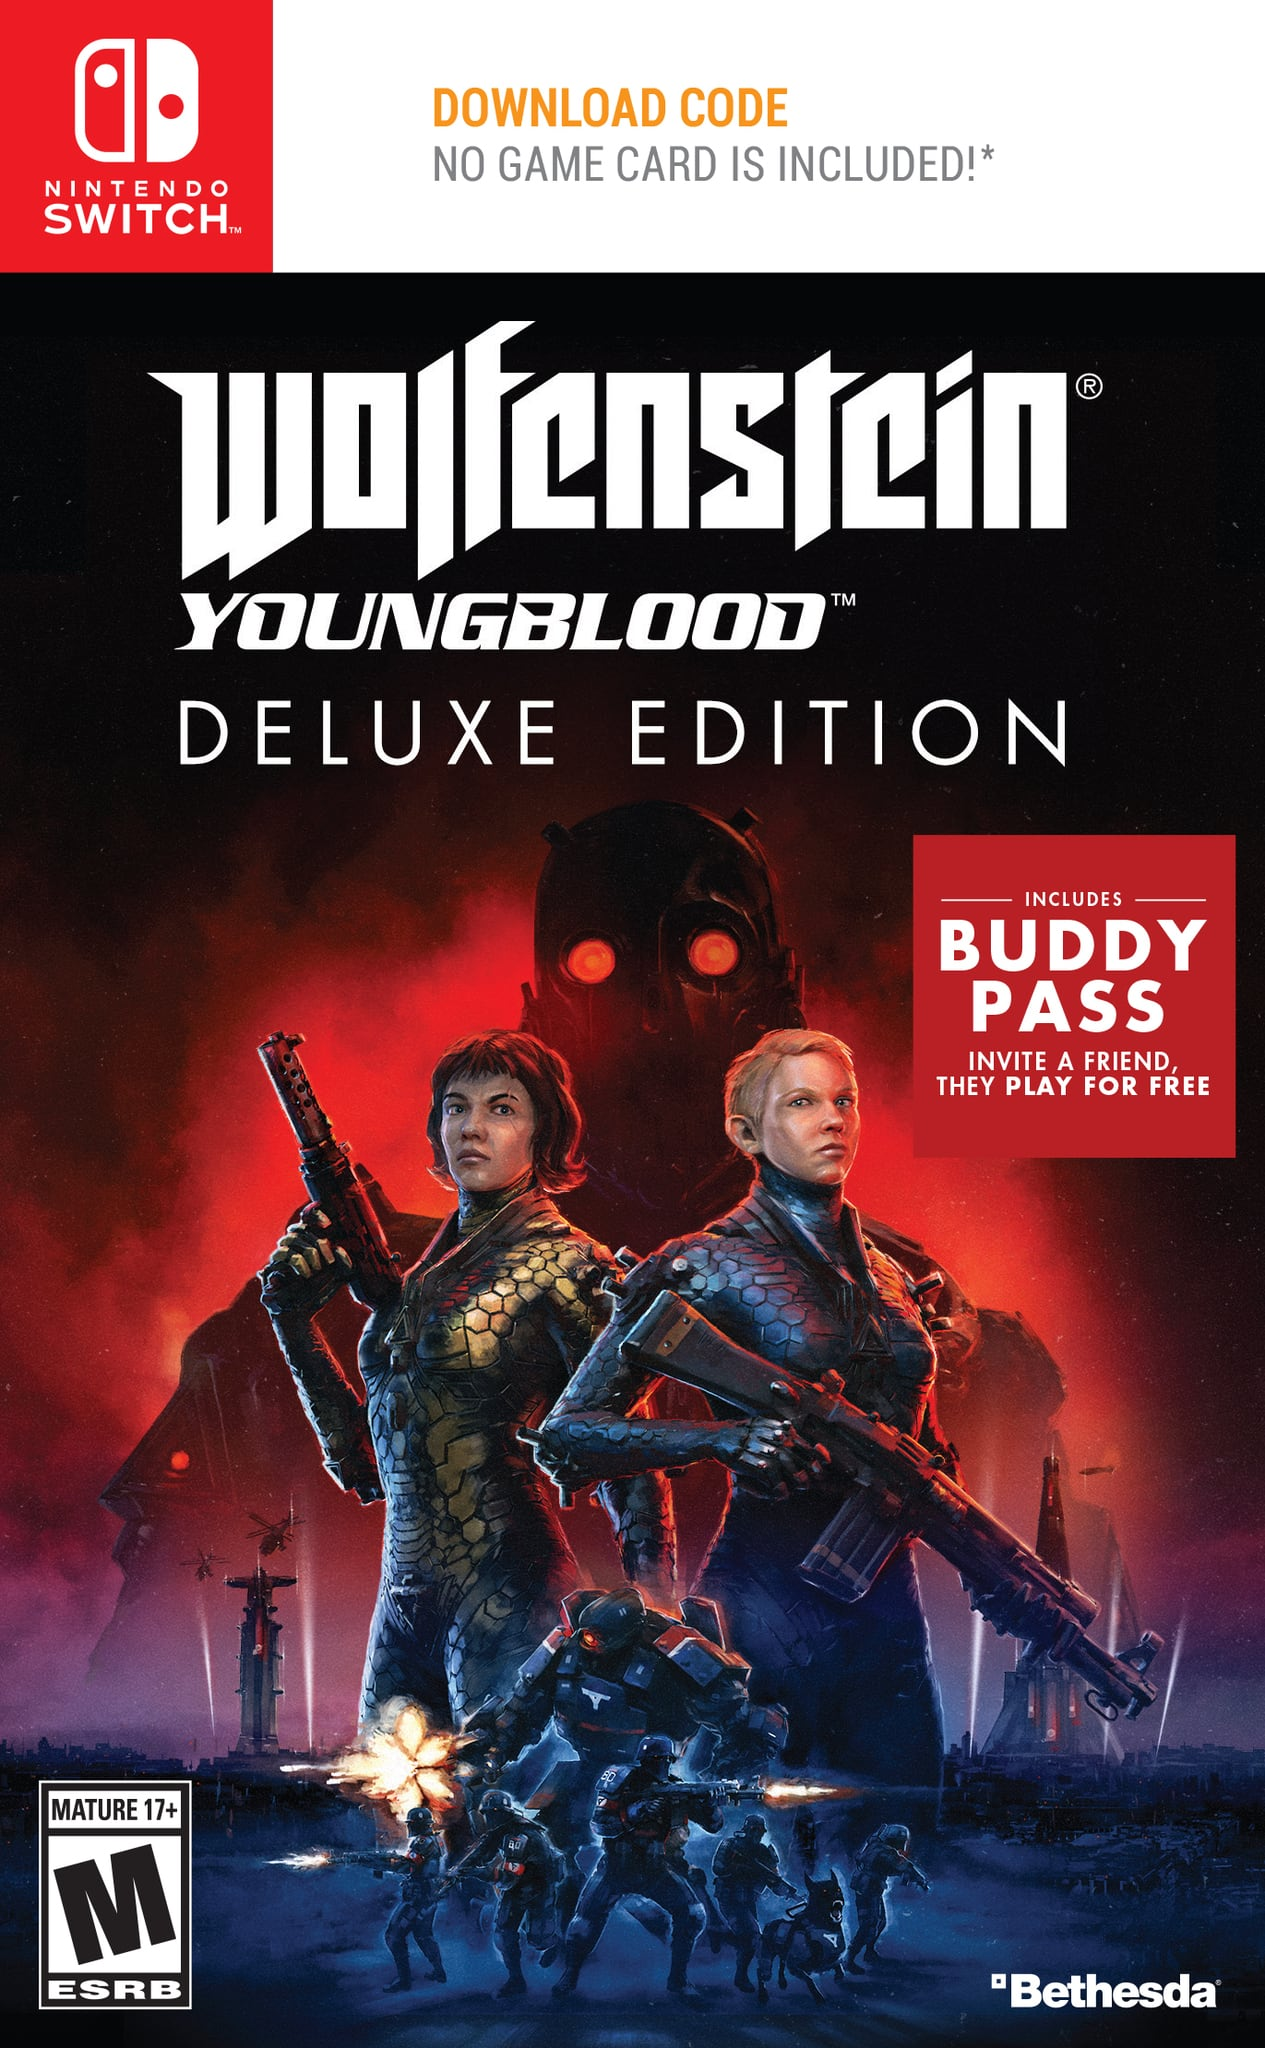 Wolfenstein Youngblood Deluxe Edition, Bethesda Softworks, Nintendo Switch, 093155174863 (Free shipment to store) $19.9